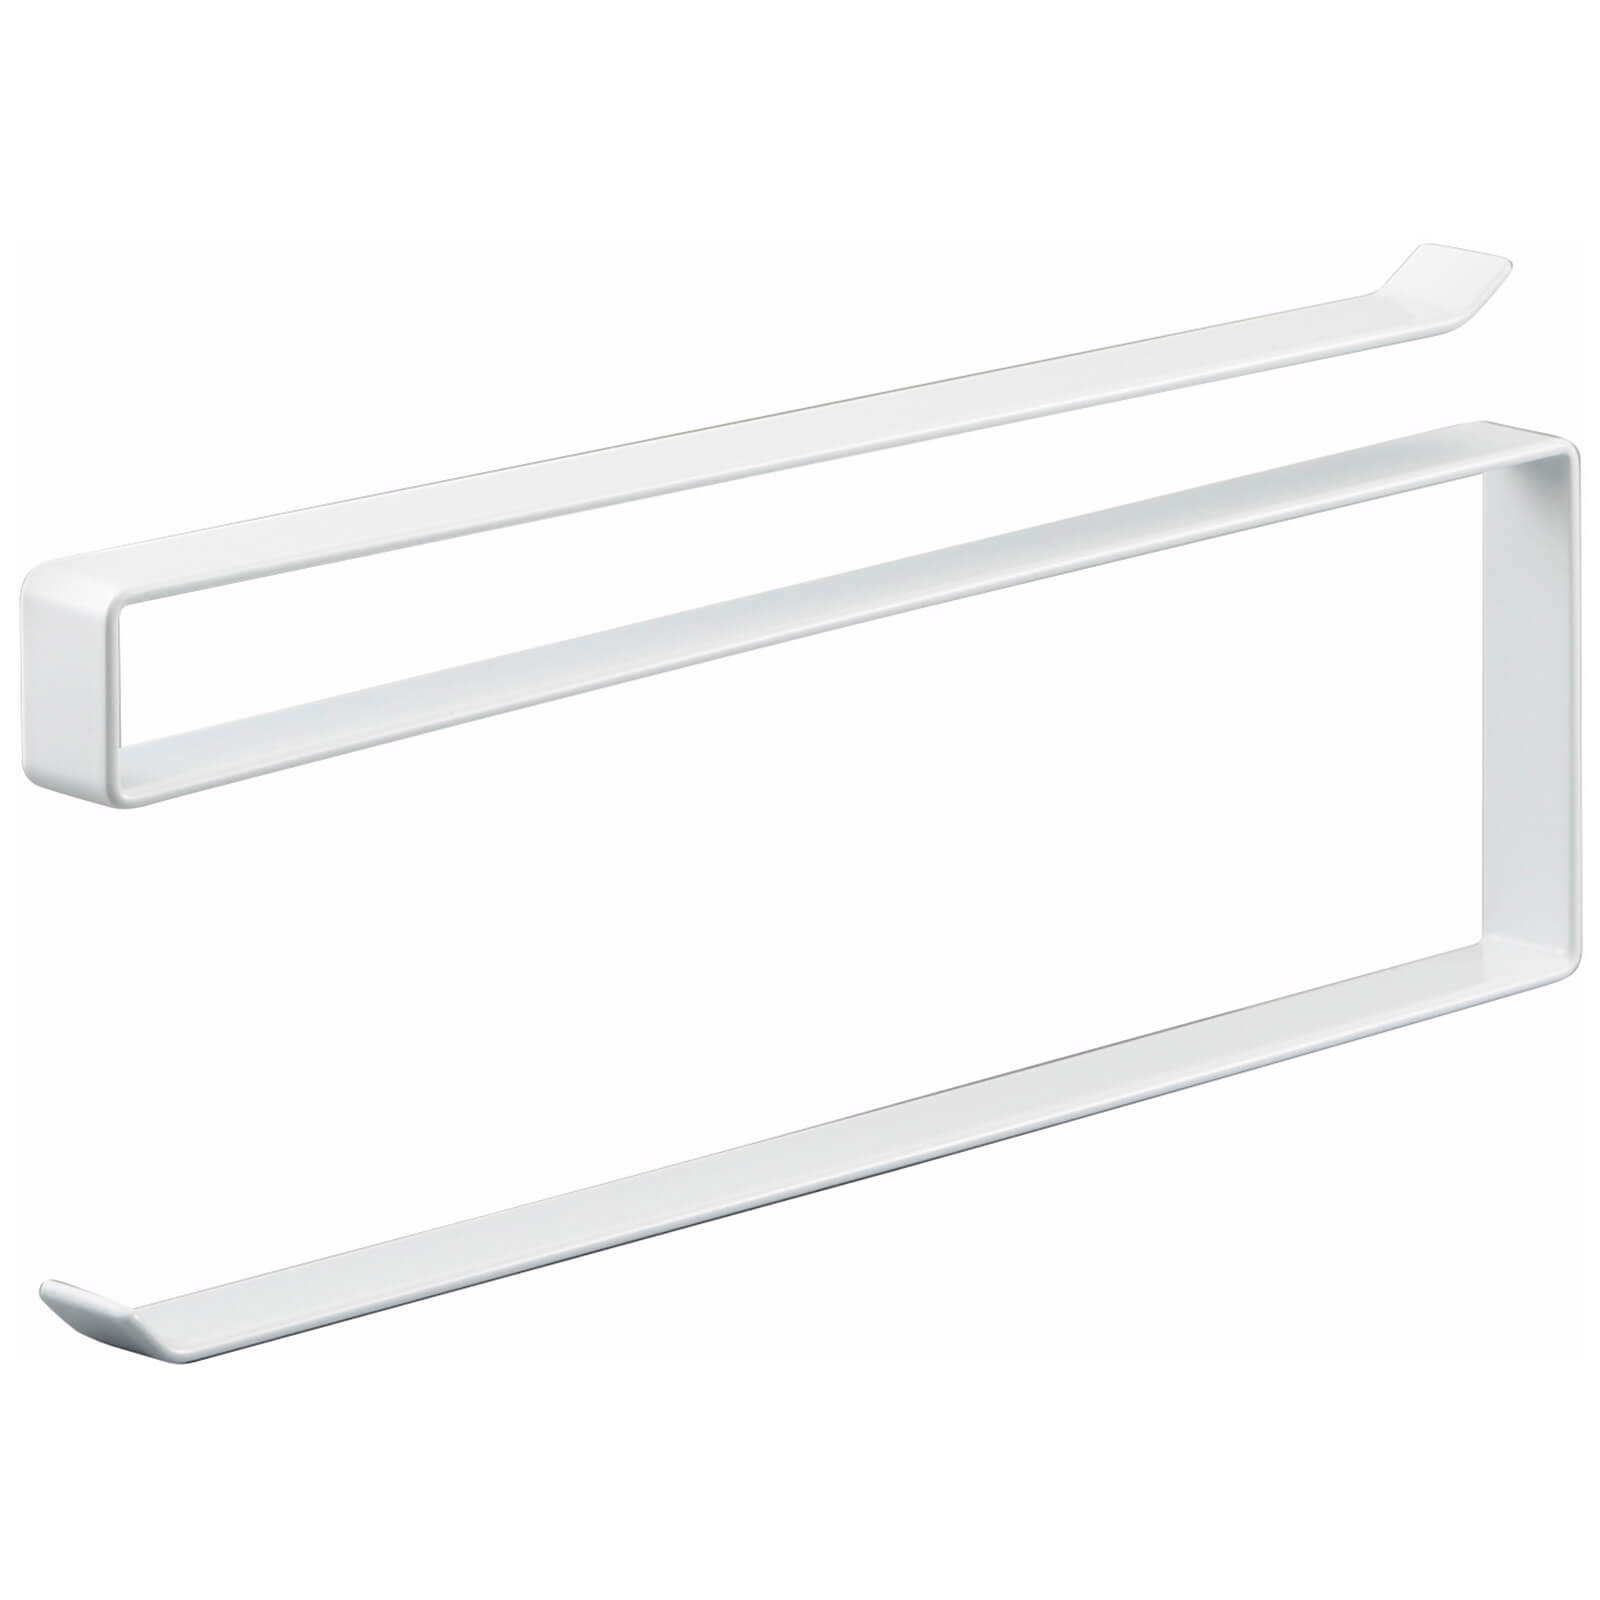 Yamazaki Tower Under Shelf Kitchen Paper Holder - White